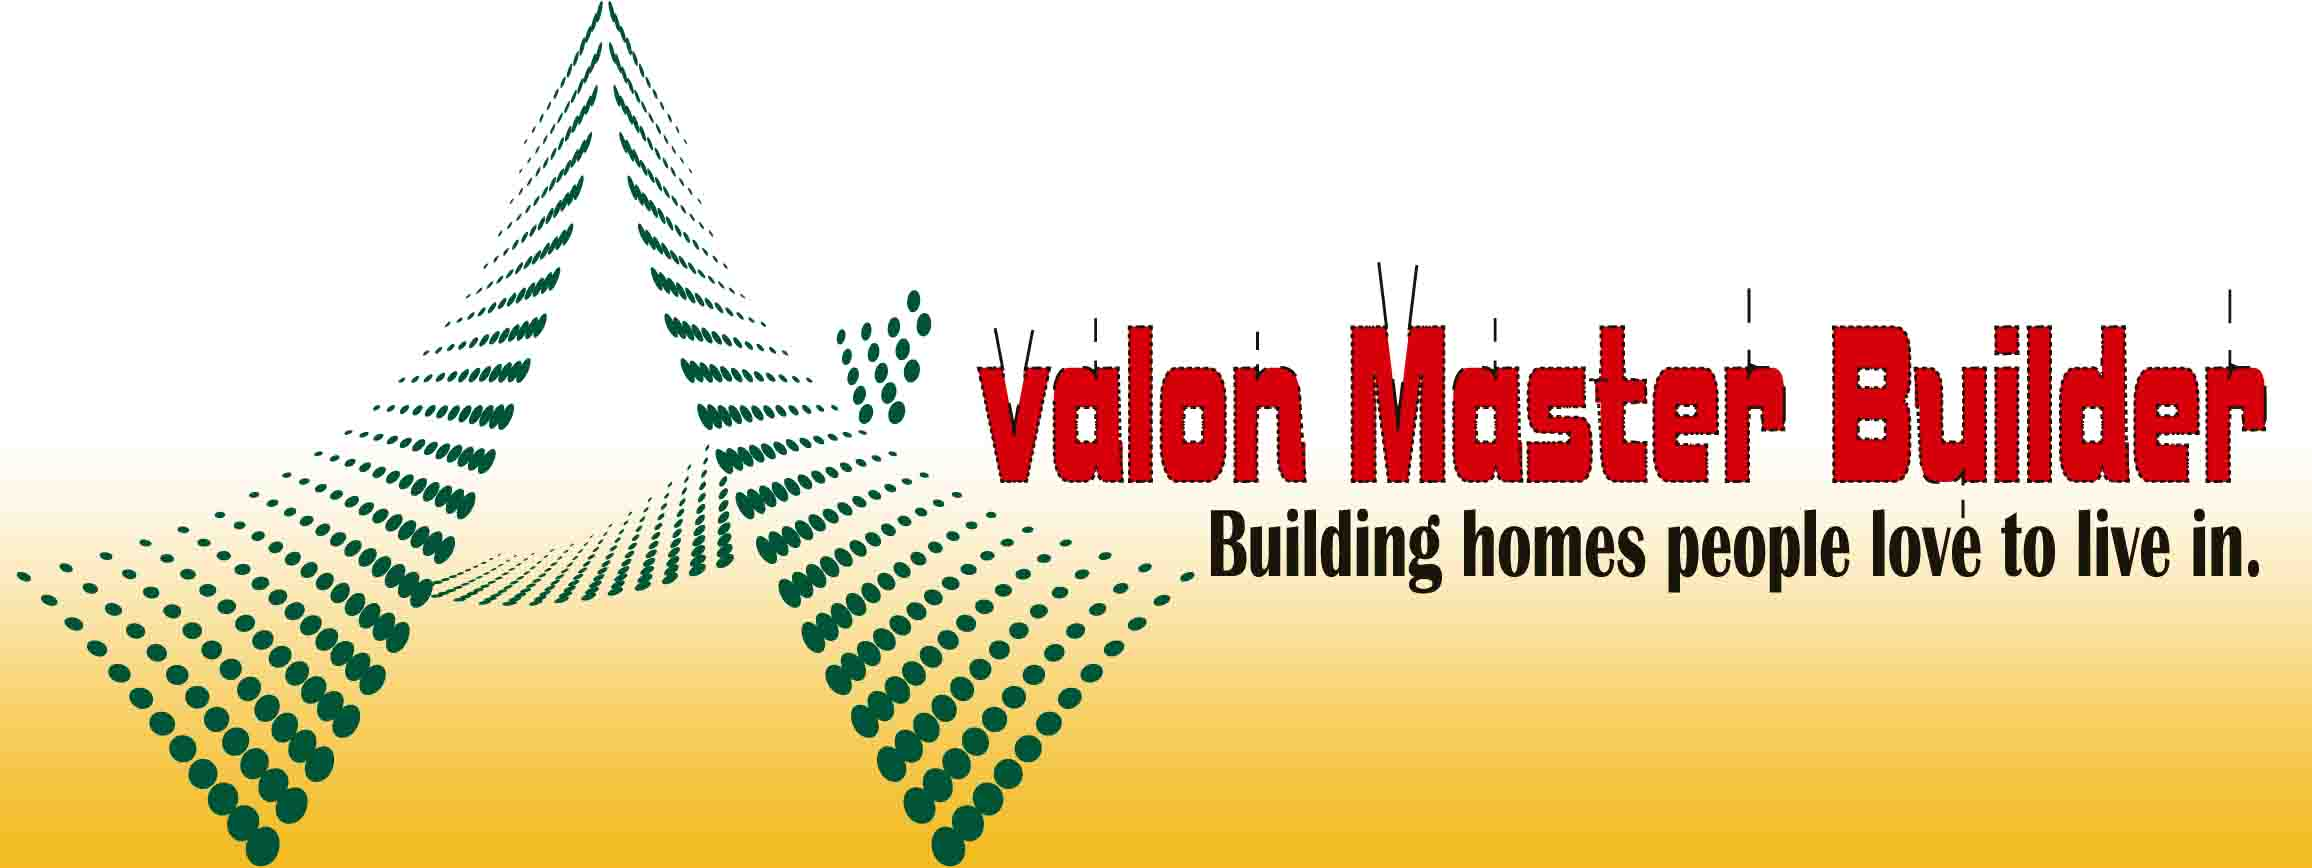 Logo Design by Aj Ong - Entry No. 8 in the Logo Design Contest Avalon Master Builder Logo Design.